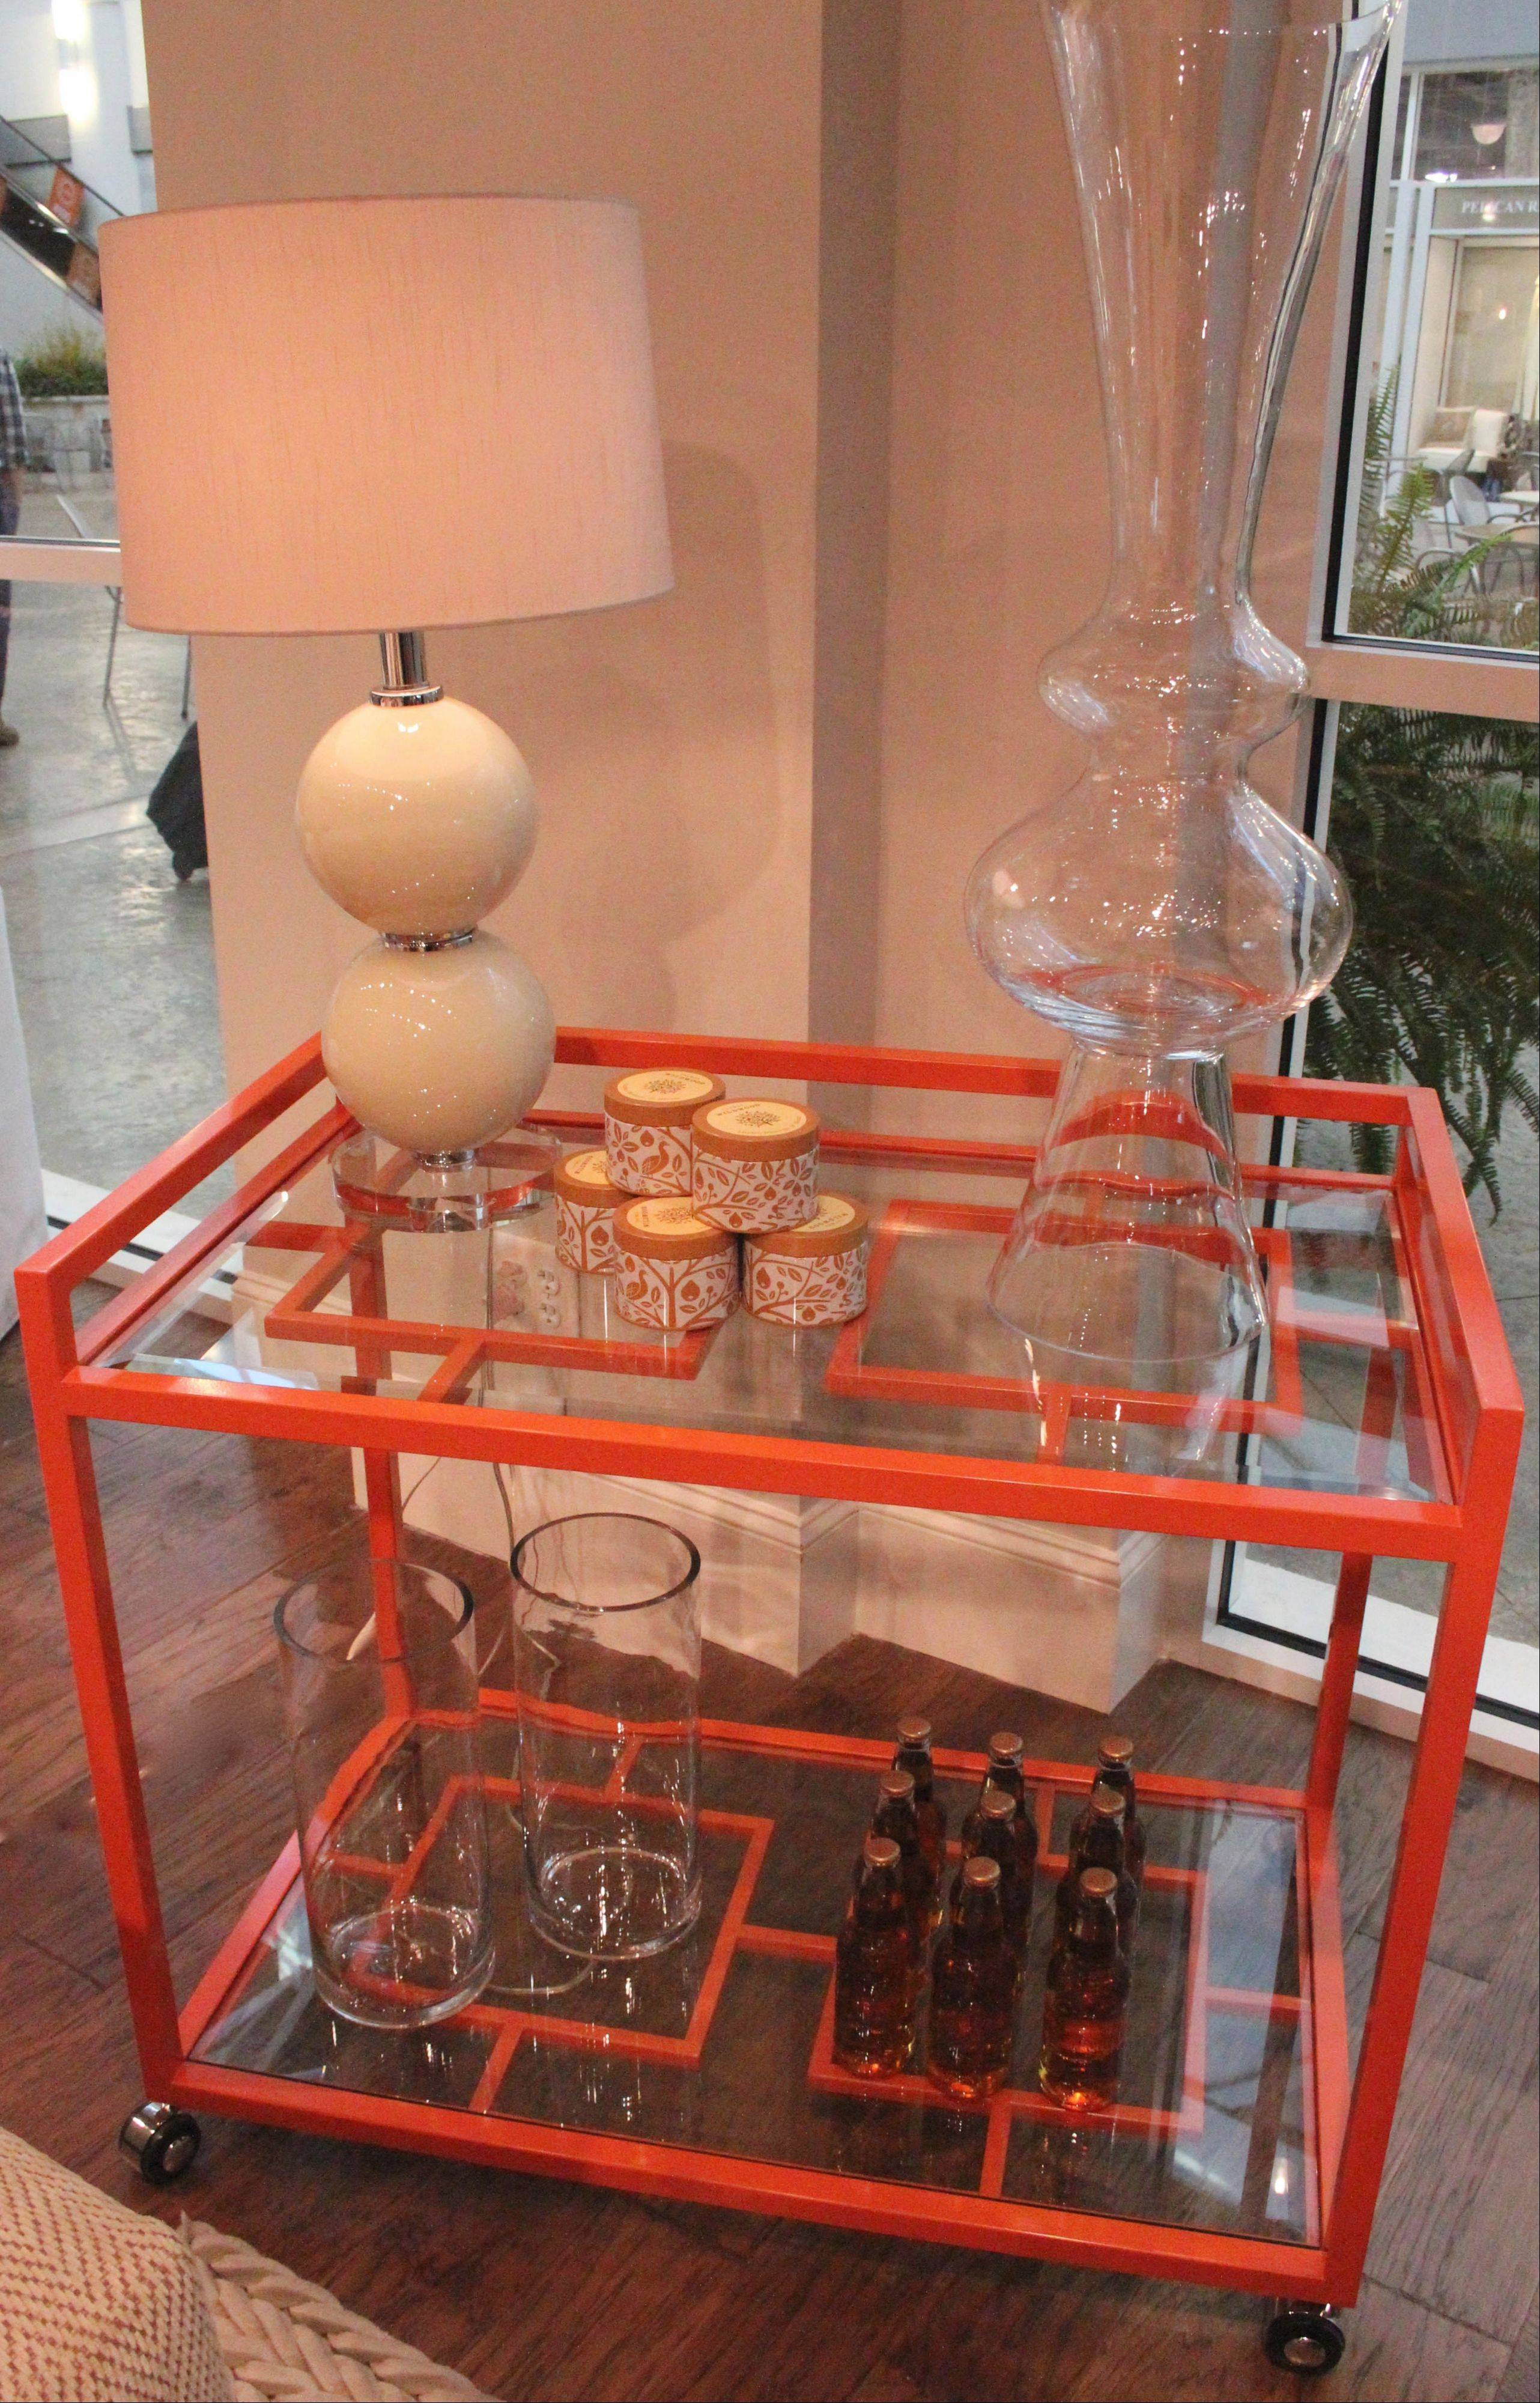 Rowe Furniture brought its orange lacquer bar cart to the Spring Furniture Market, a prominent home decor show in North Carolina.